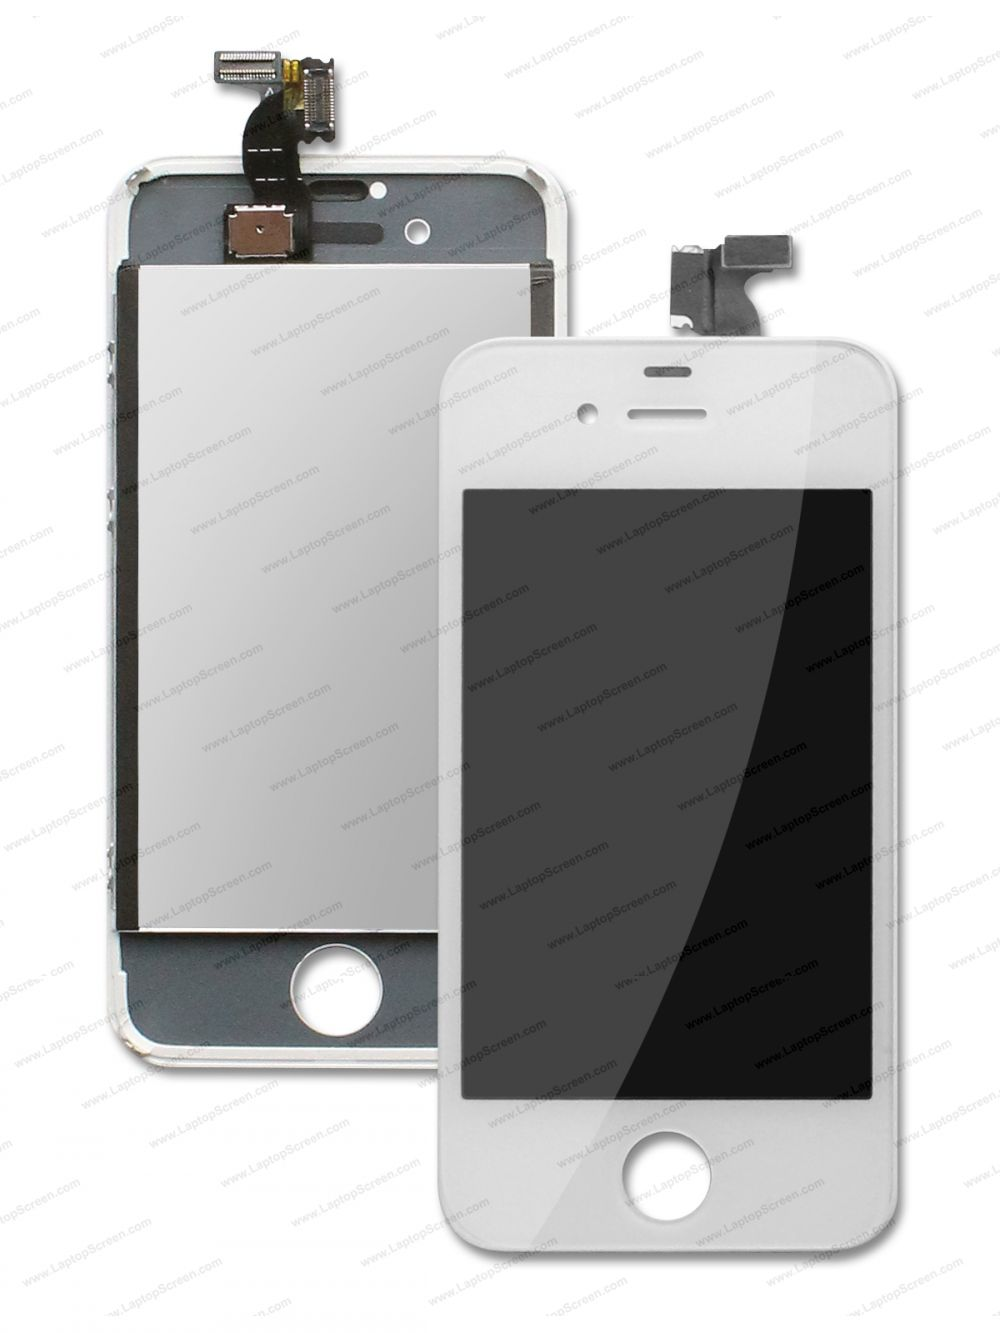 iphone 4s screen replacement iphone 4s screen and glass digitizer replacement and repair 14451